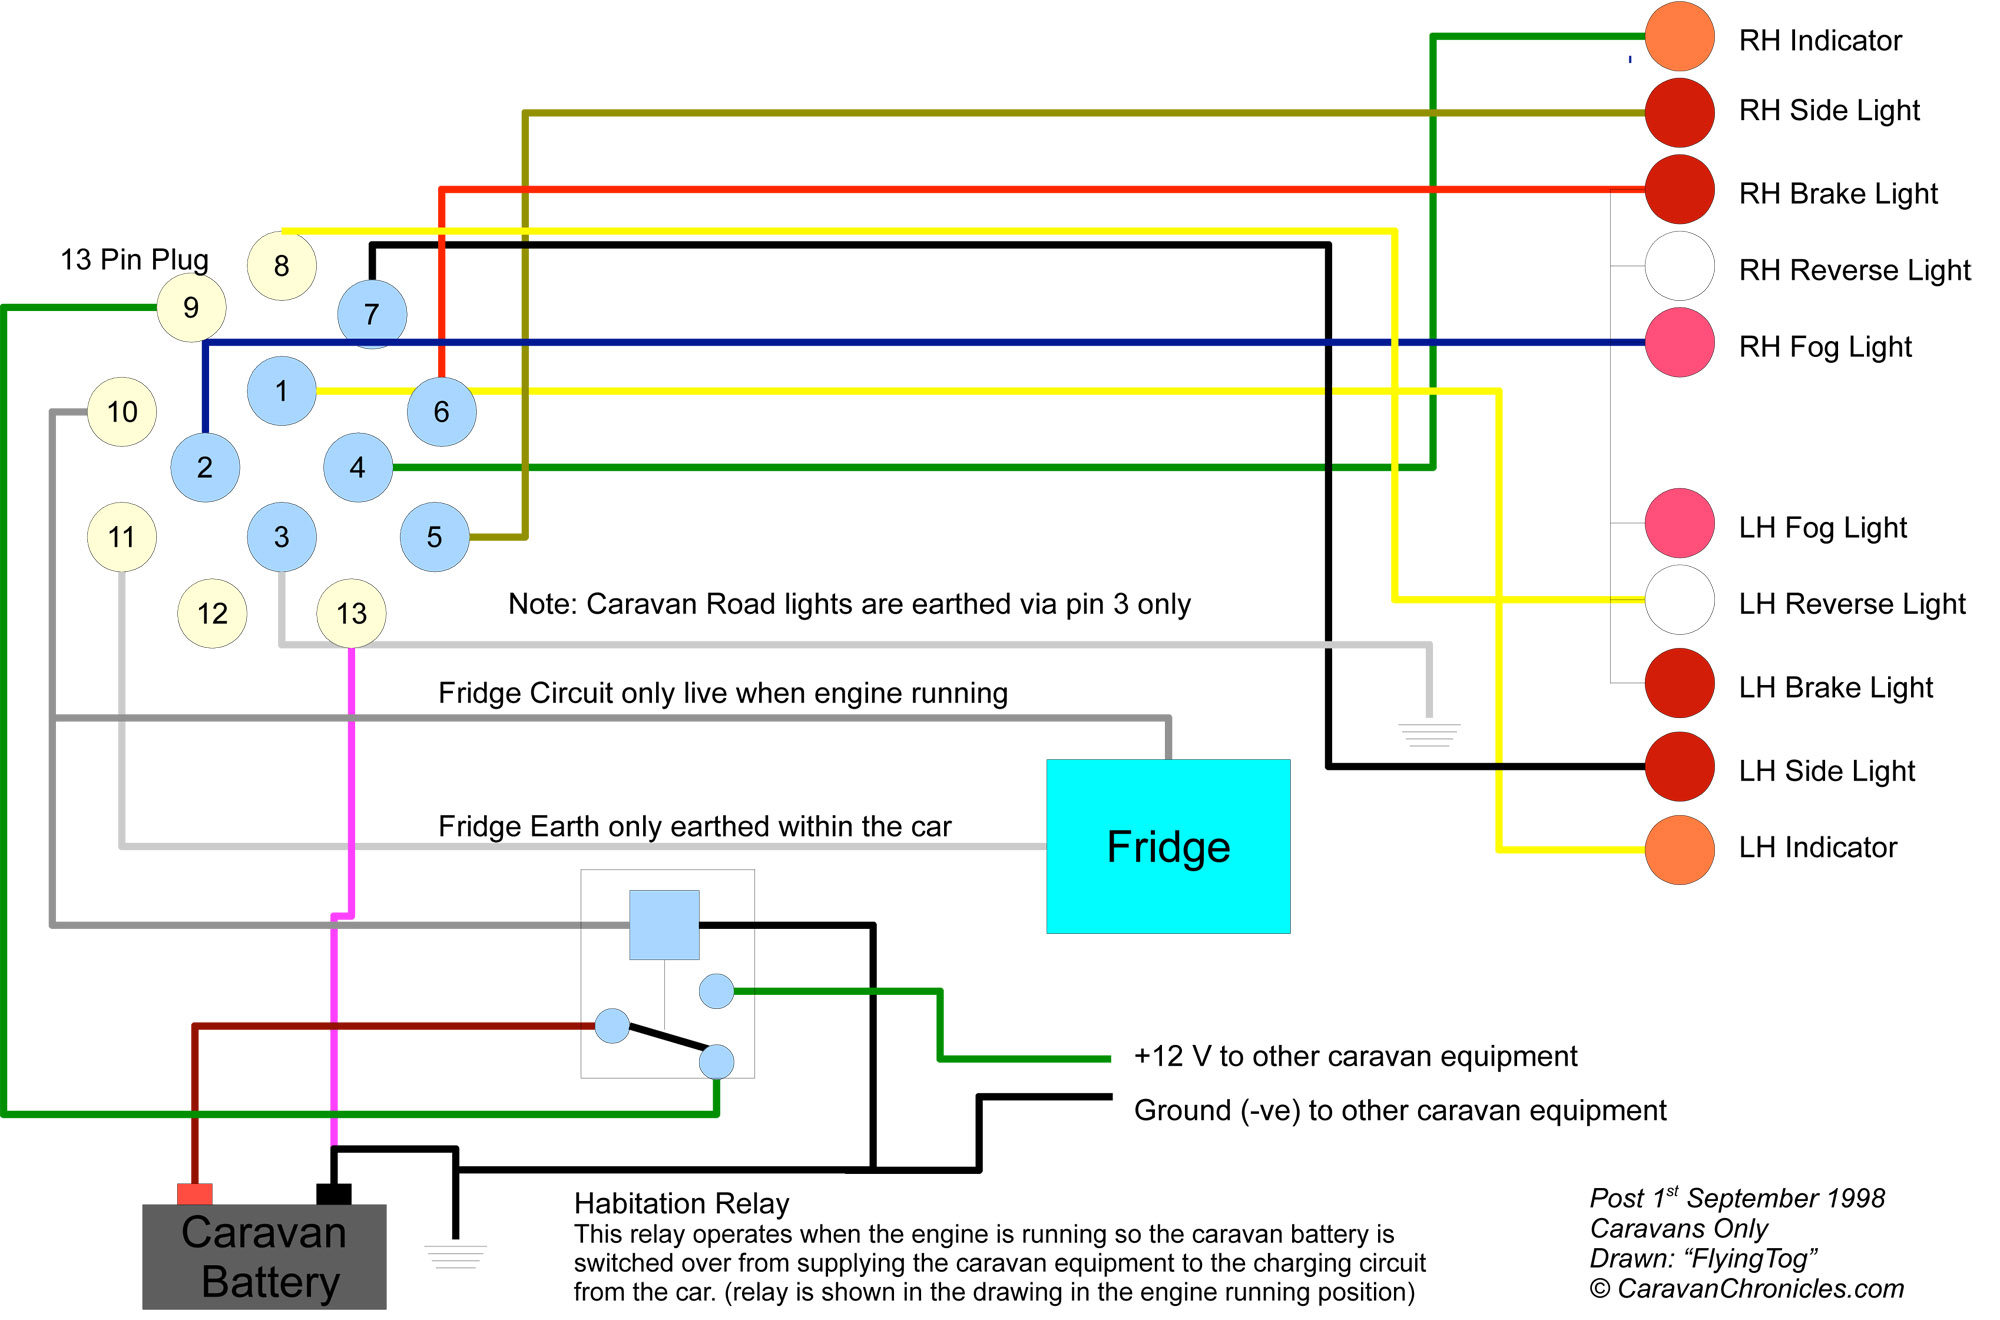 Ac Plug Wiring Diagram from caravanchronicles.files.wordpress.com